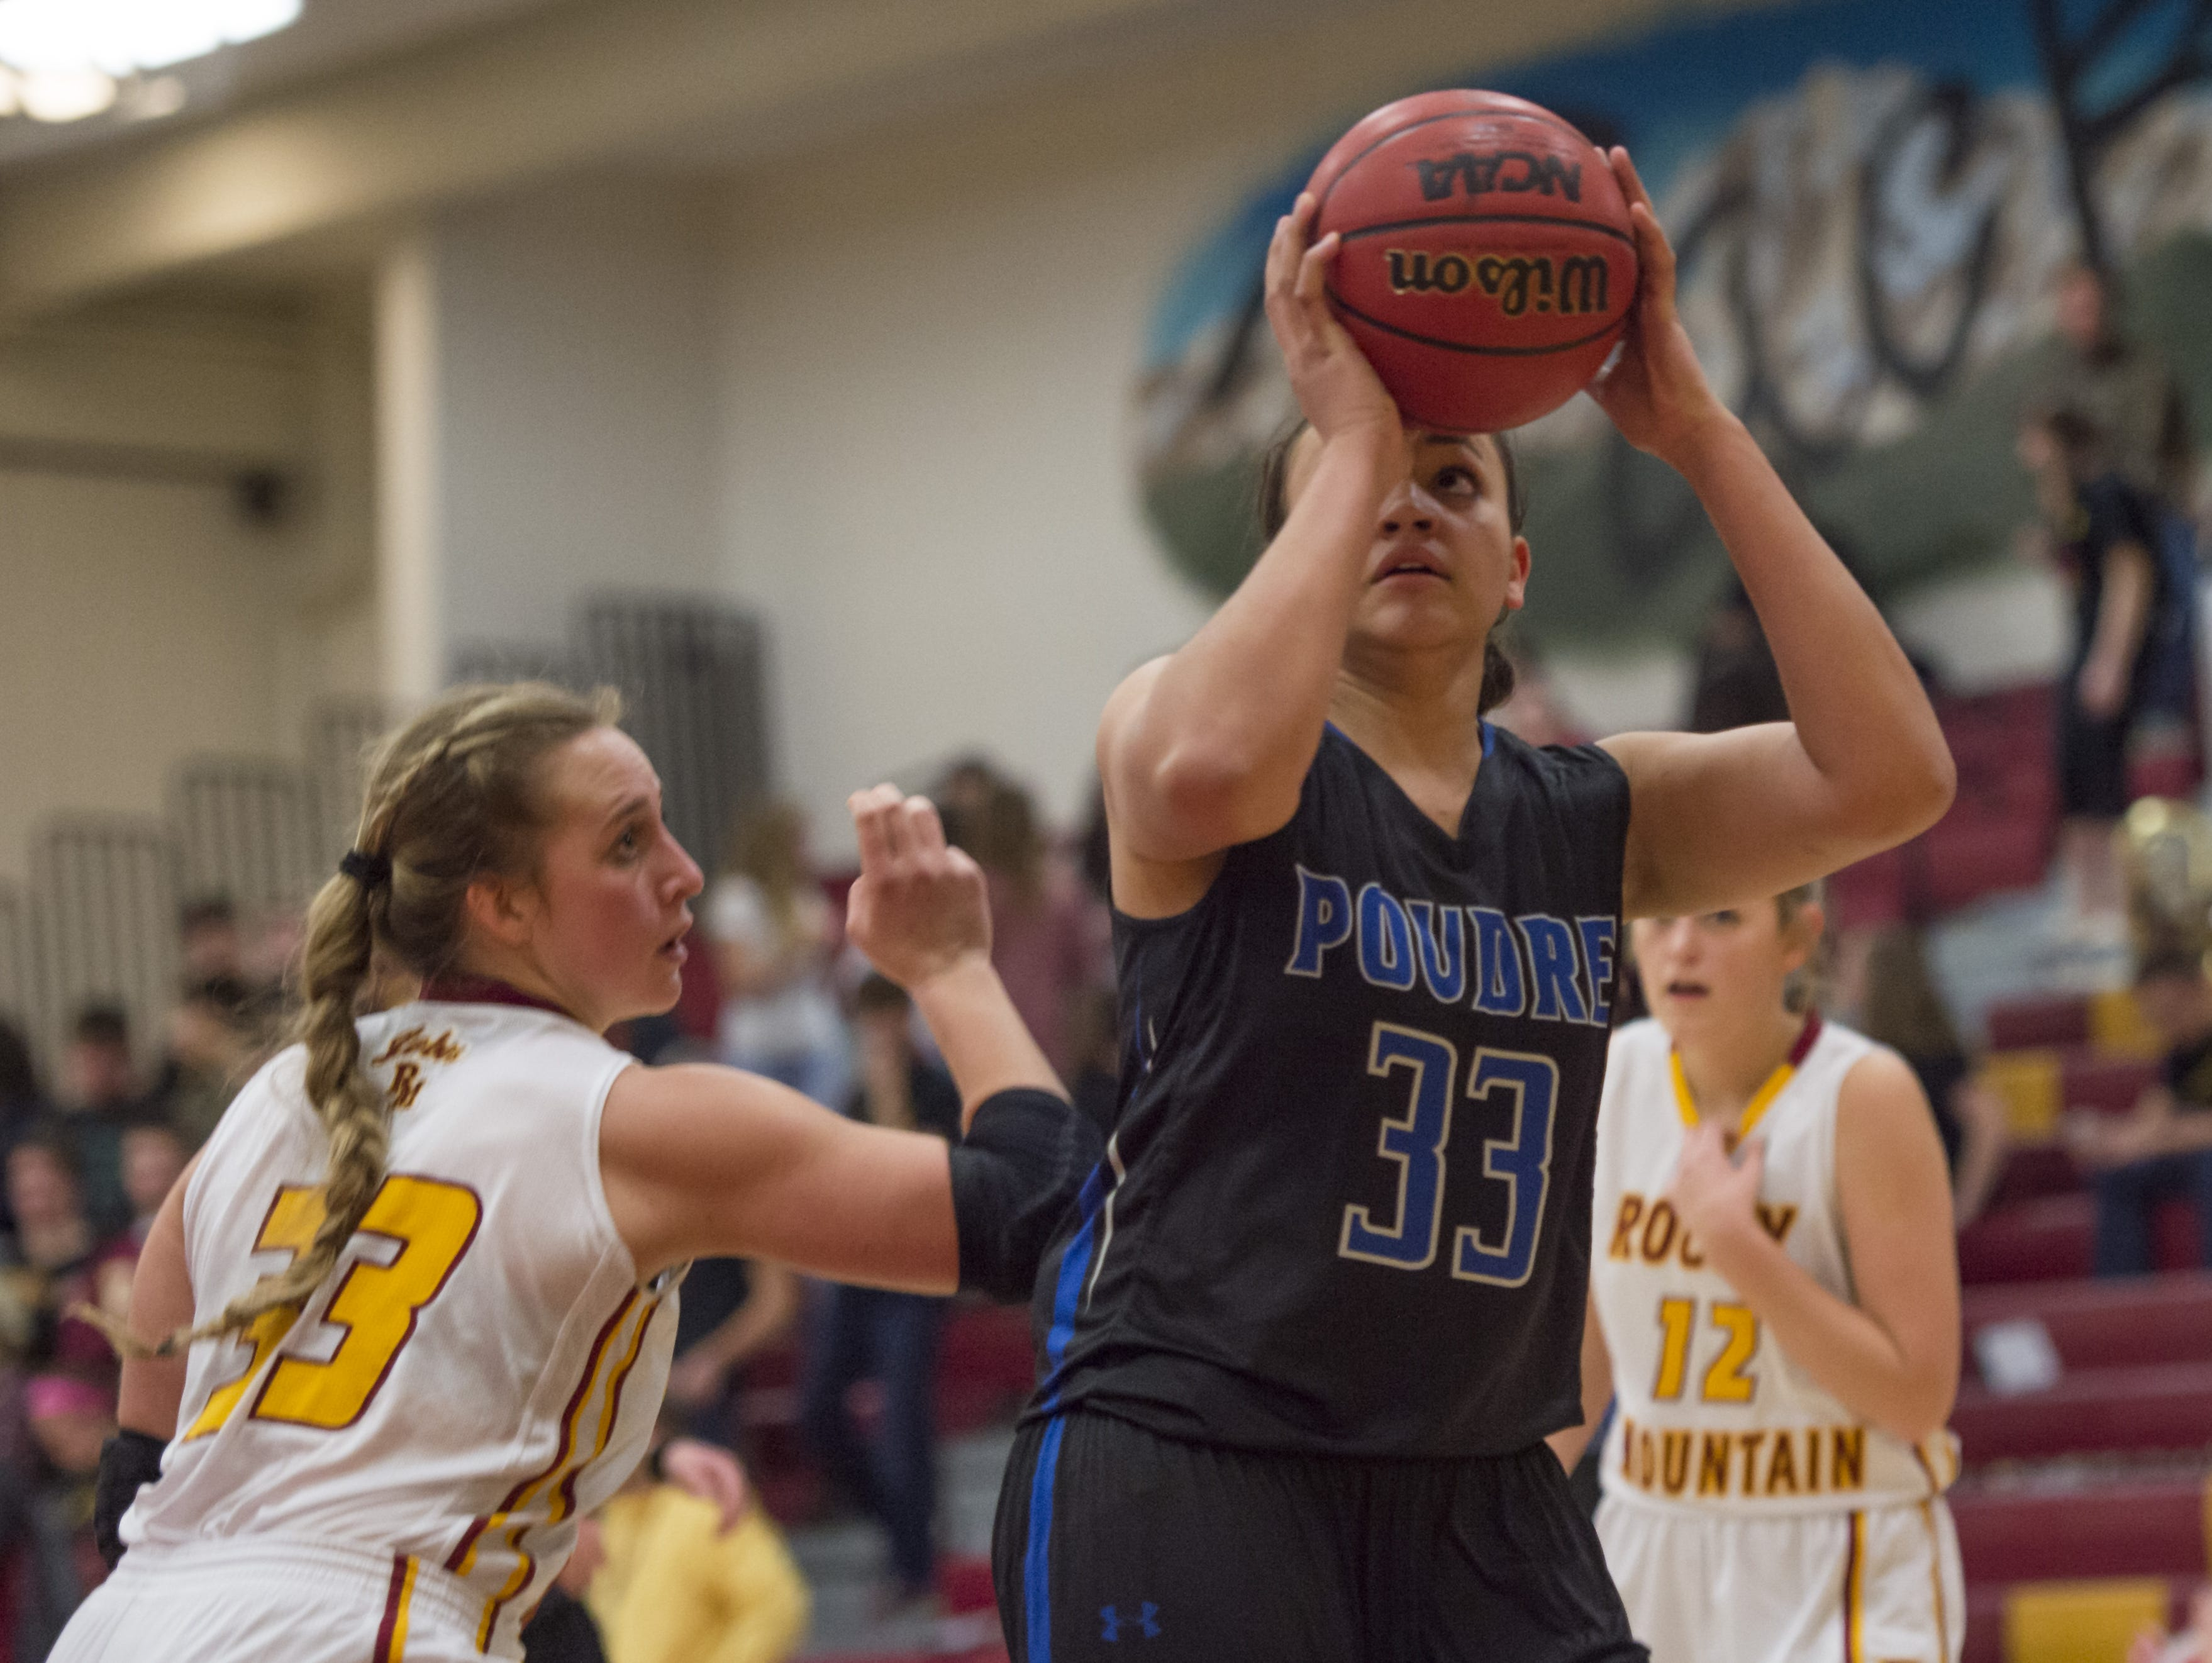 Poudre's Madison Hamm (33), shown earlier this season, scored a game-high 13 points to lead the Impalas to a 45-29 win over Liberty on Saturday to advance to the 5A Sweet 16.